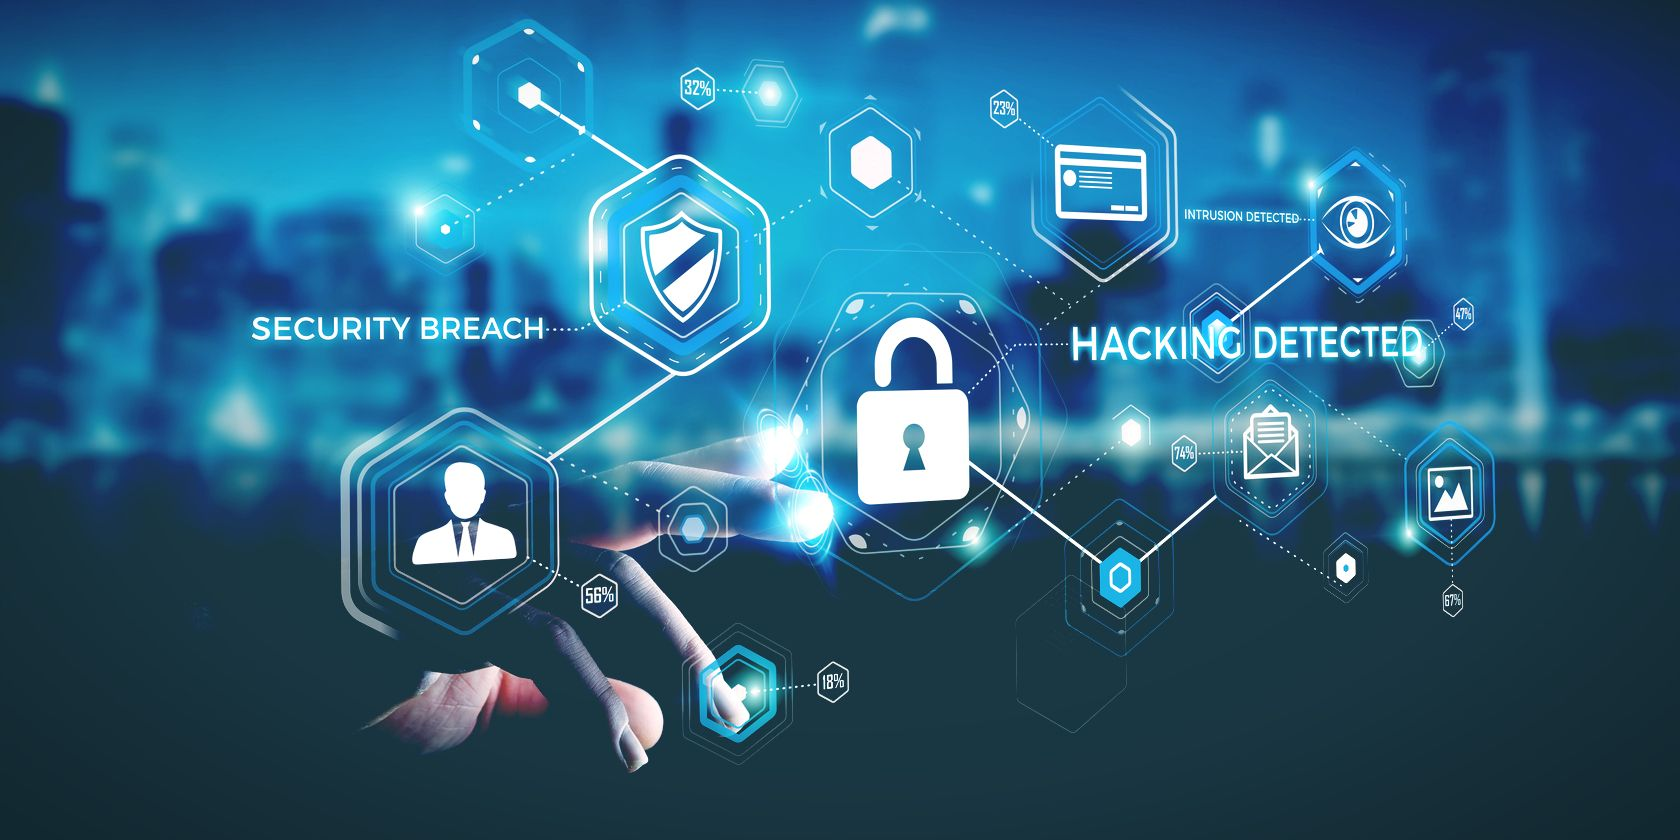 The Top 4 Cybersecurity Trends to Watch Out for in 2021 and Beyond